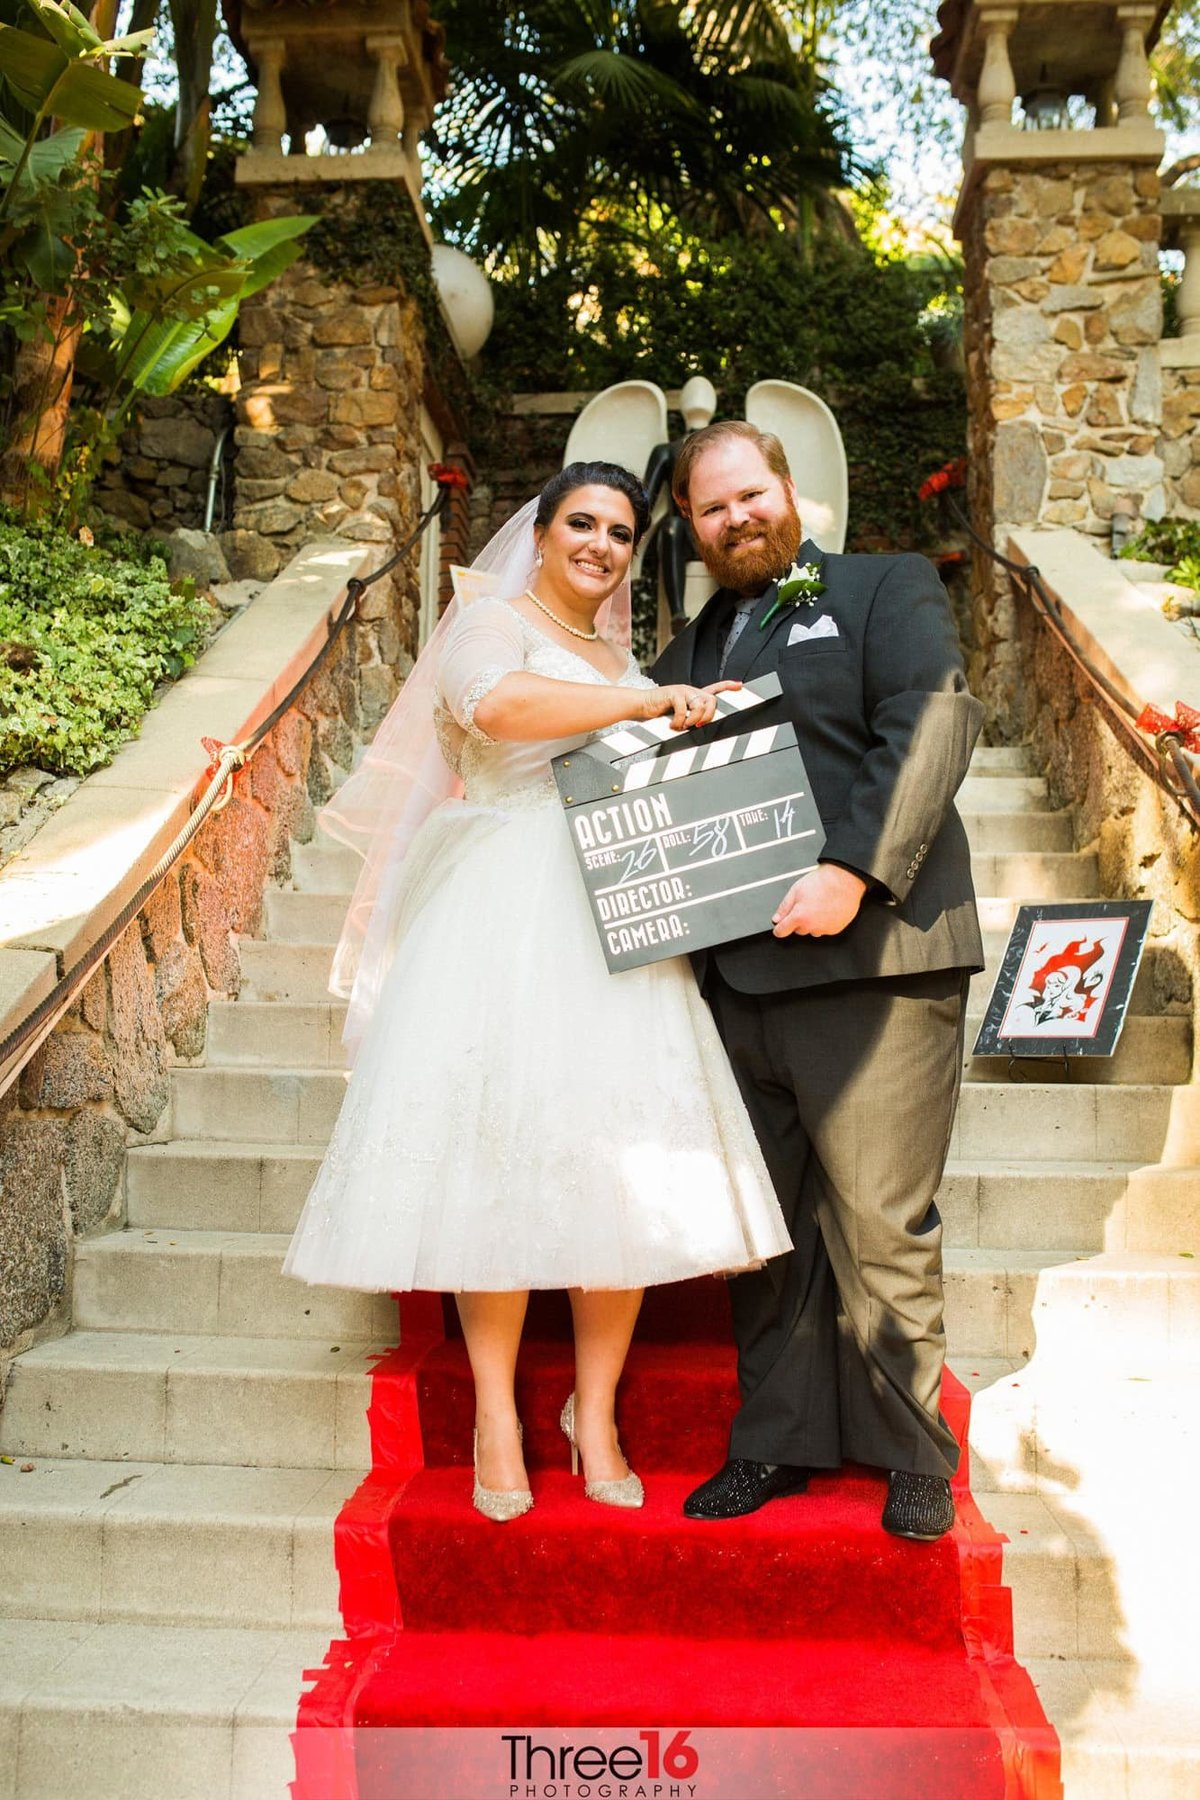 Bride and Groom pose on the red carpeted staircase